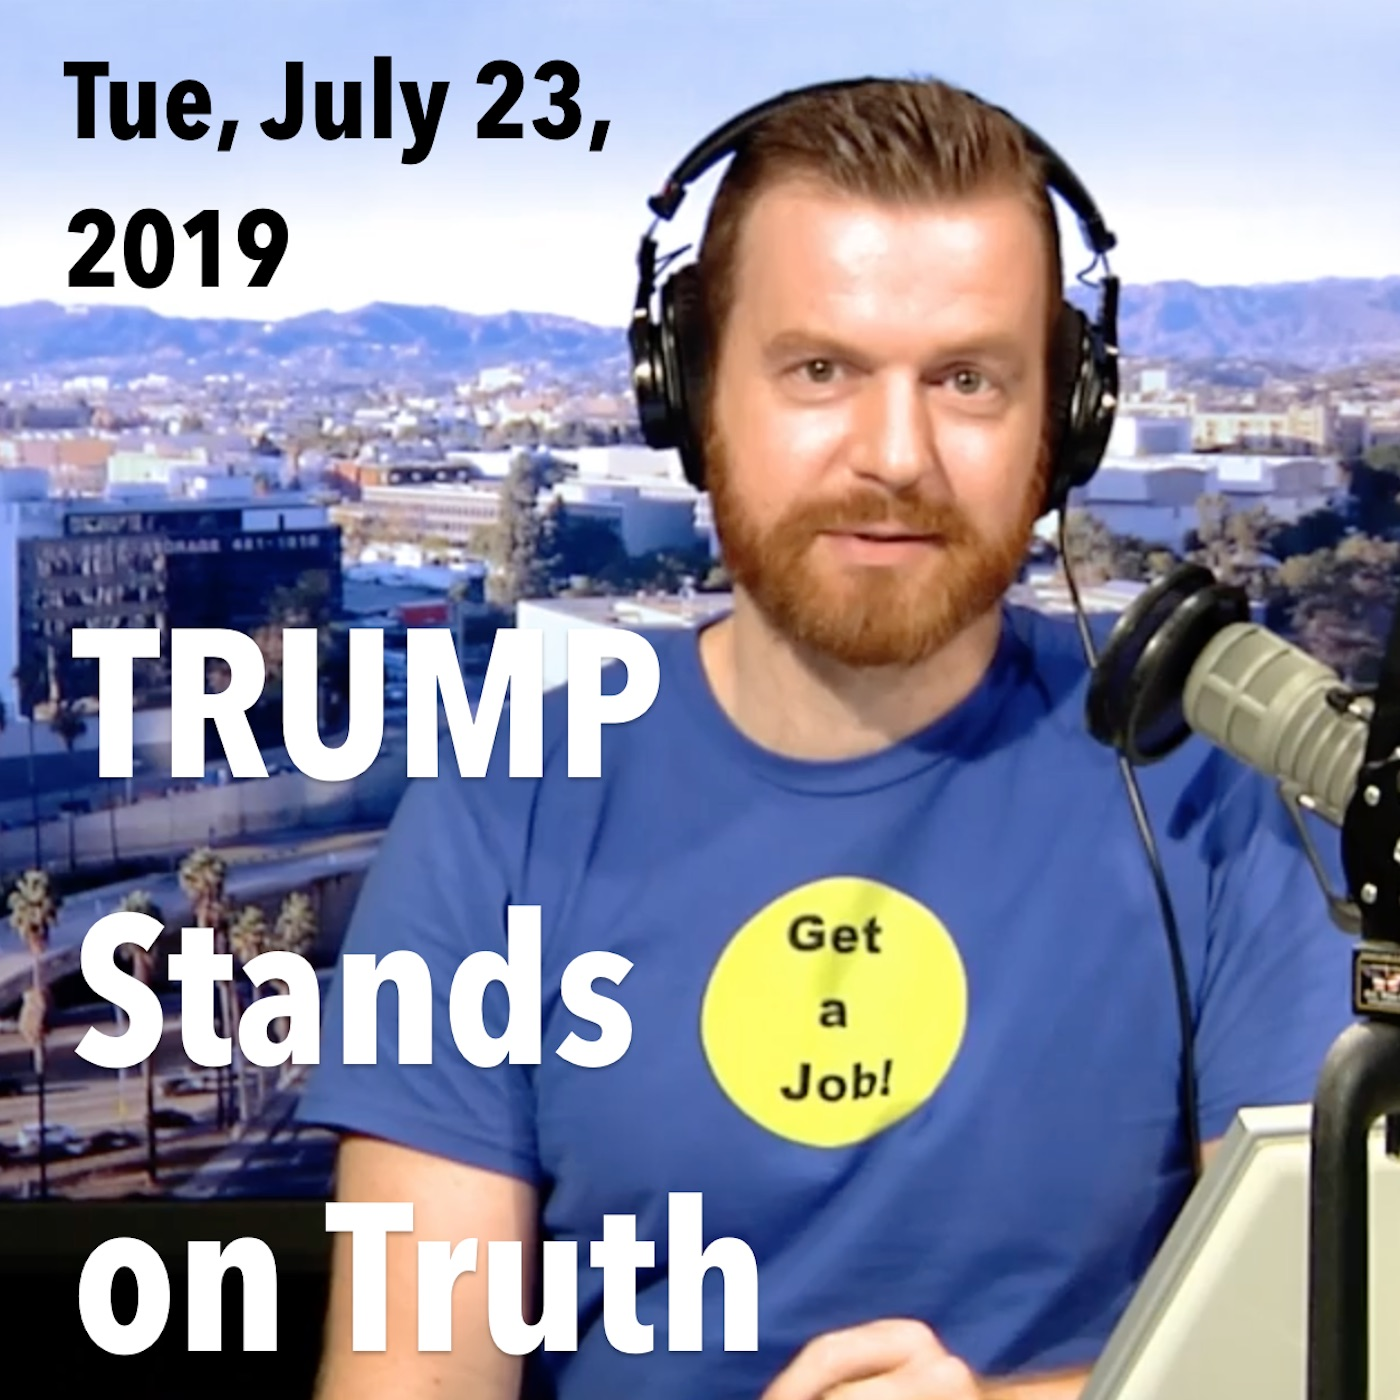 Square thumbnail from today's show, Tuesday, July 23, 2019: Trump Stands on Truth